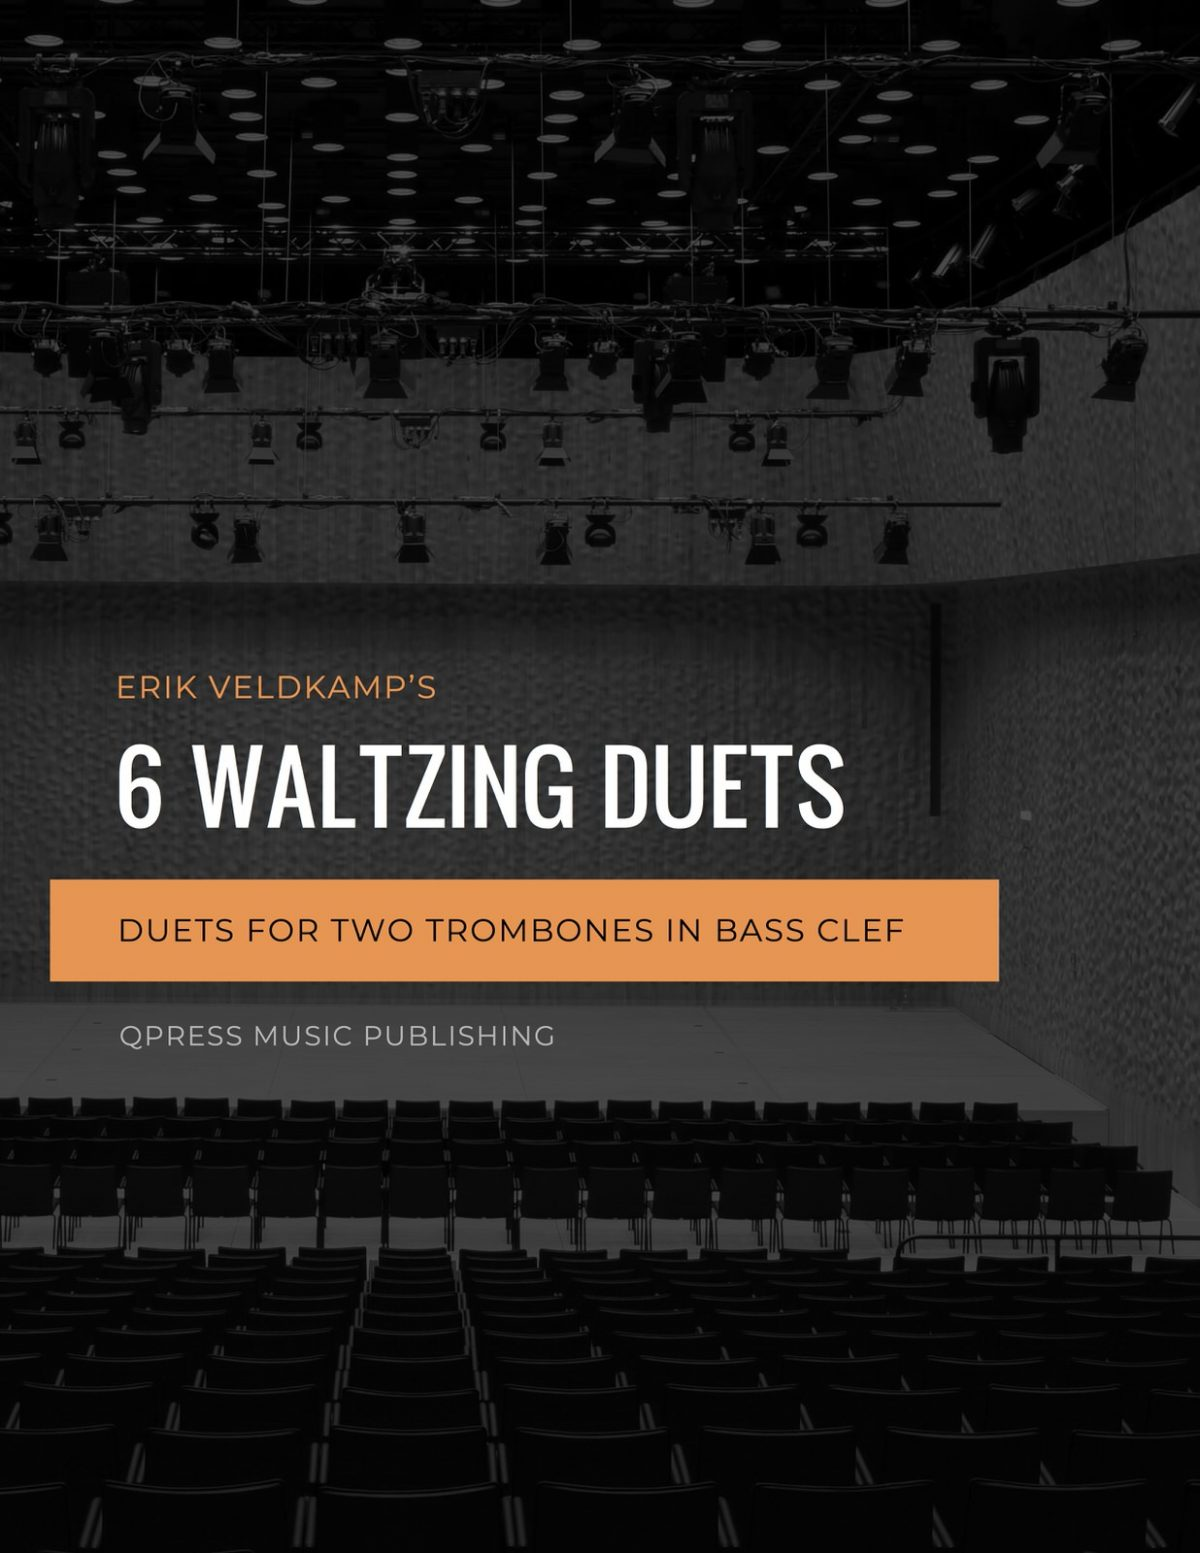 Veldkamp, Waltzing Duets for Trombone-p01